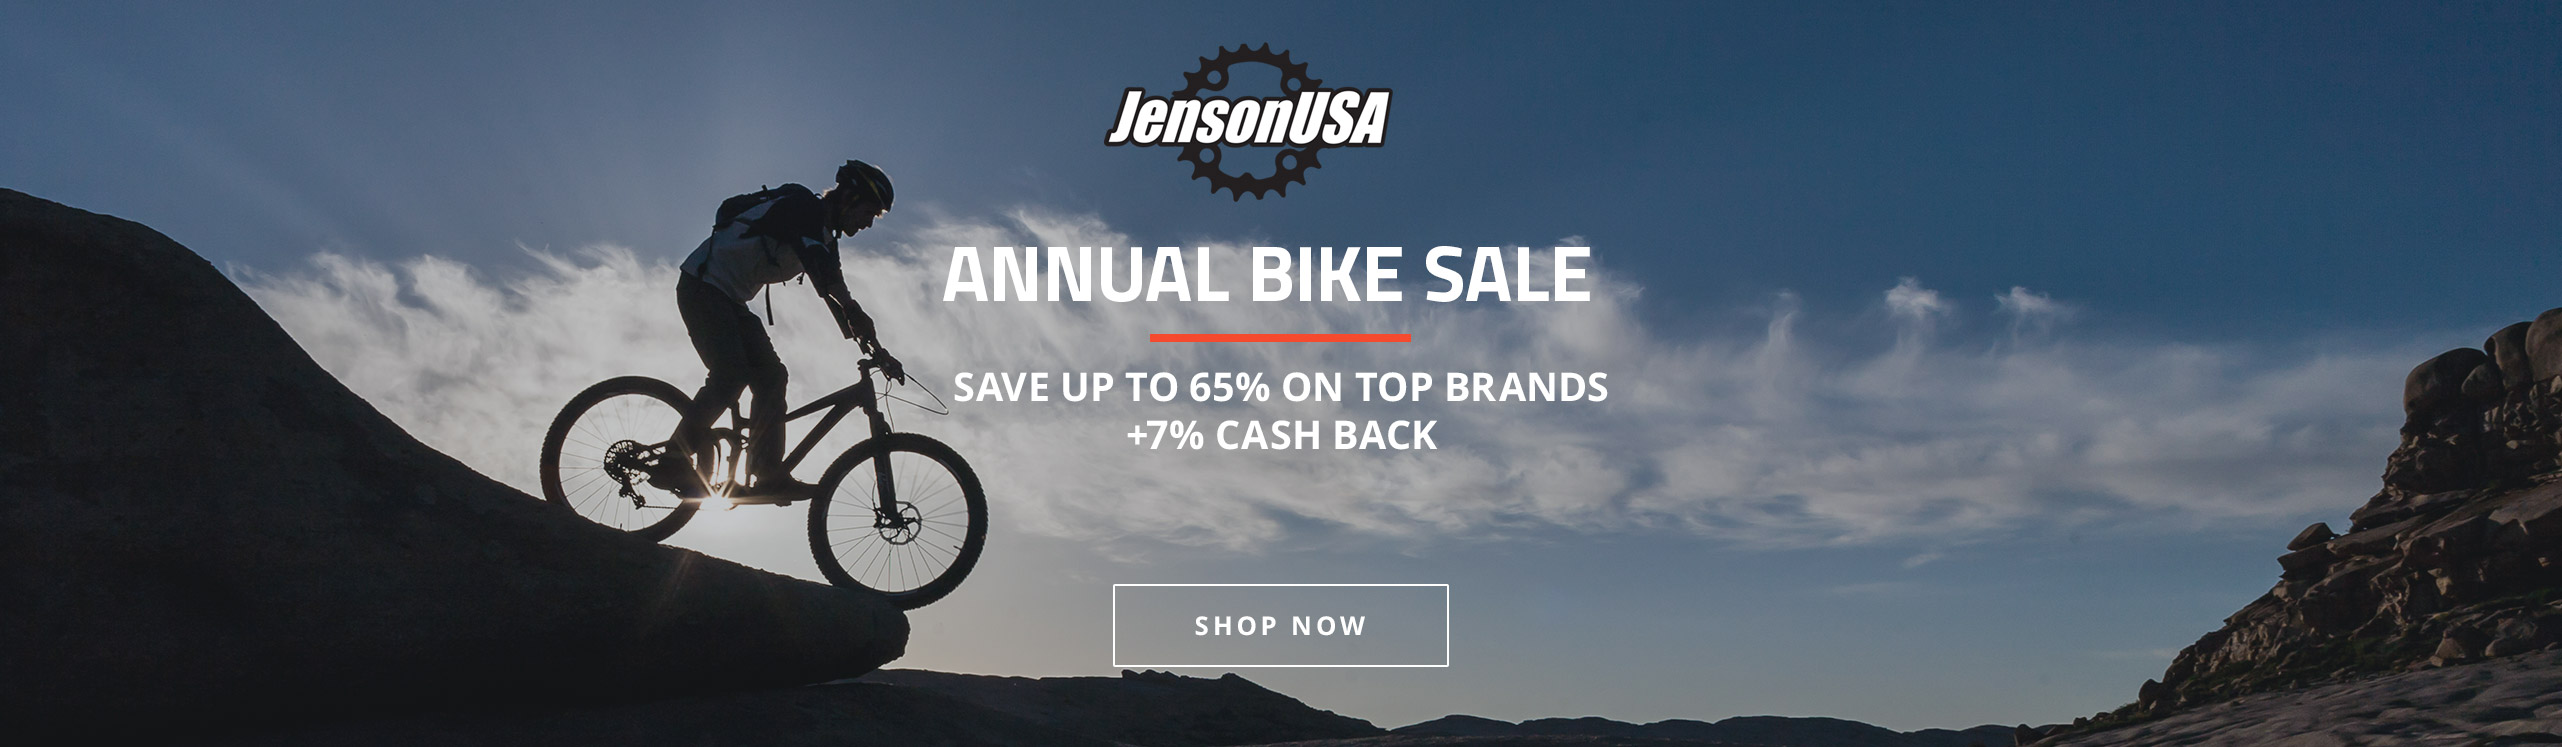 Jenson Annual Bike Sale